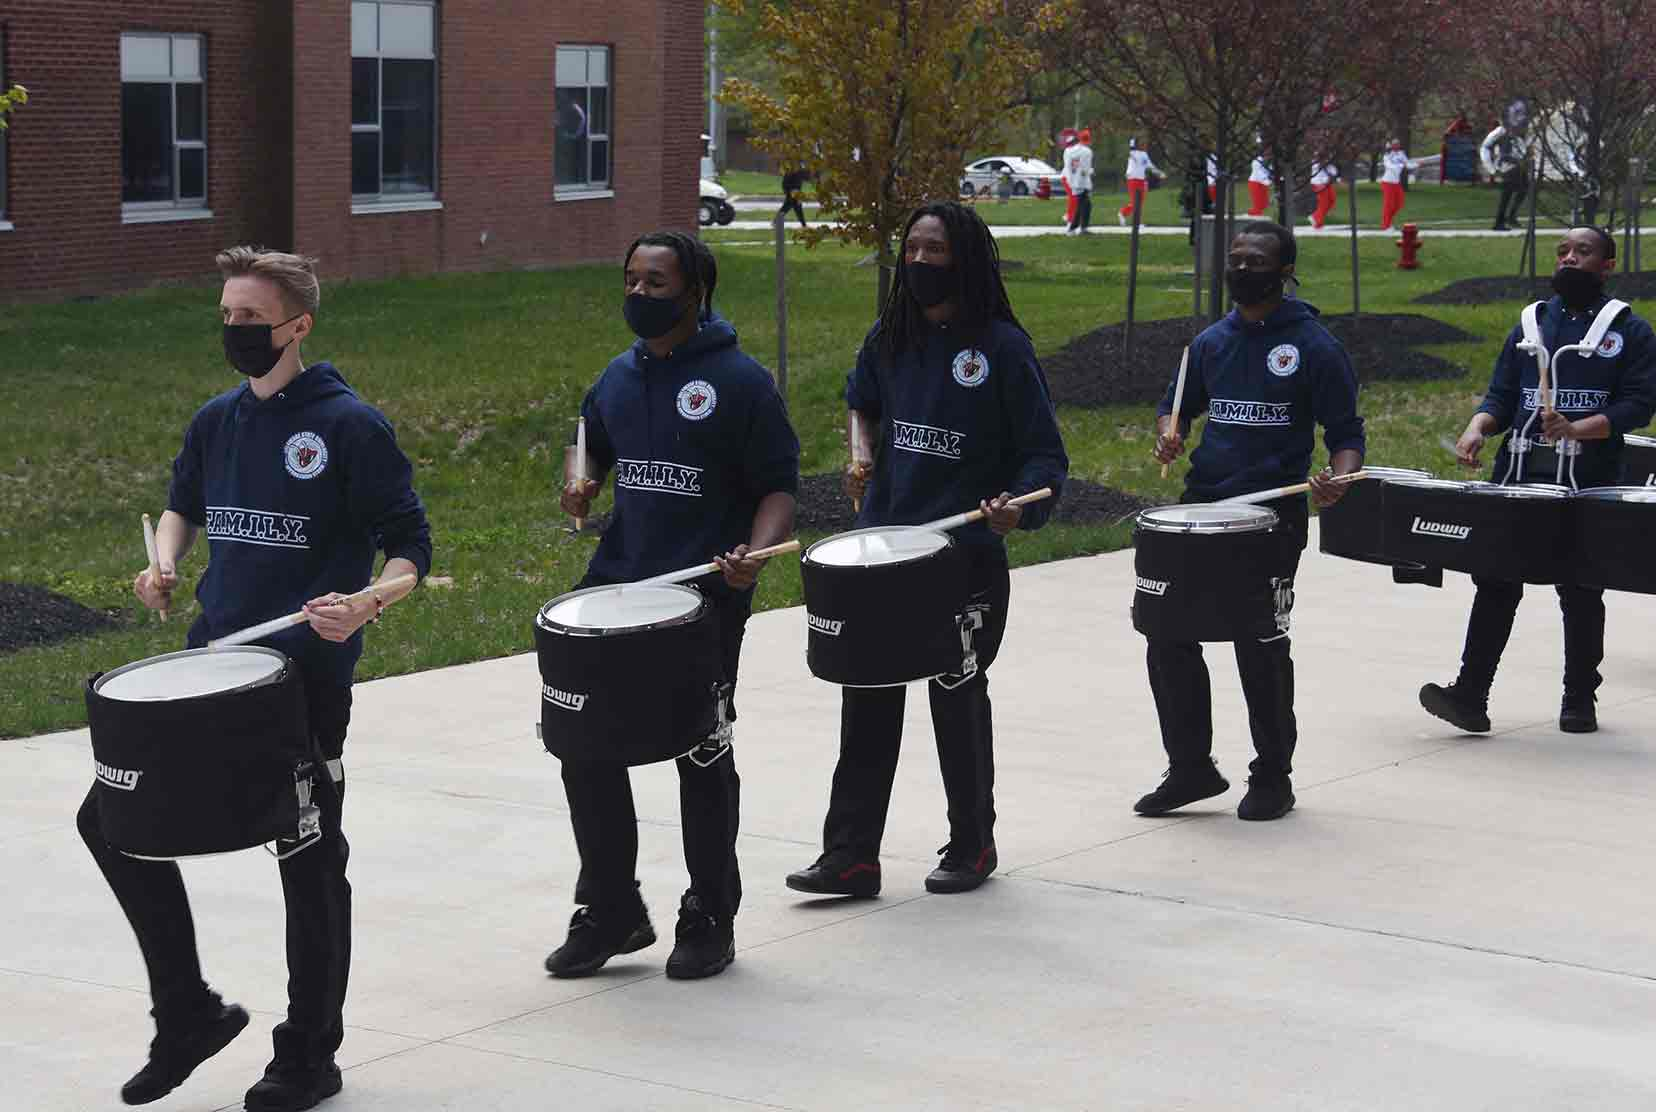 Marching band groups strut their stuff for 1st time in over a year